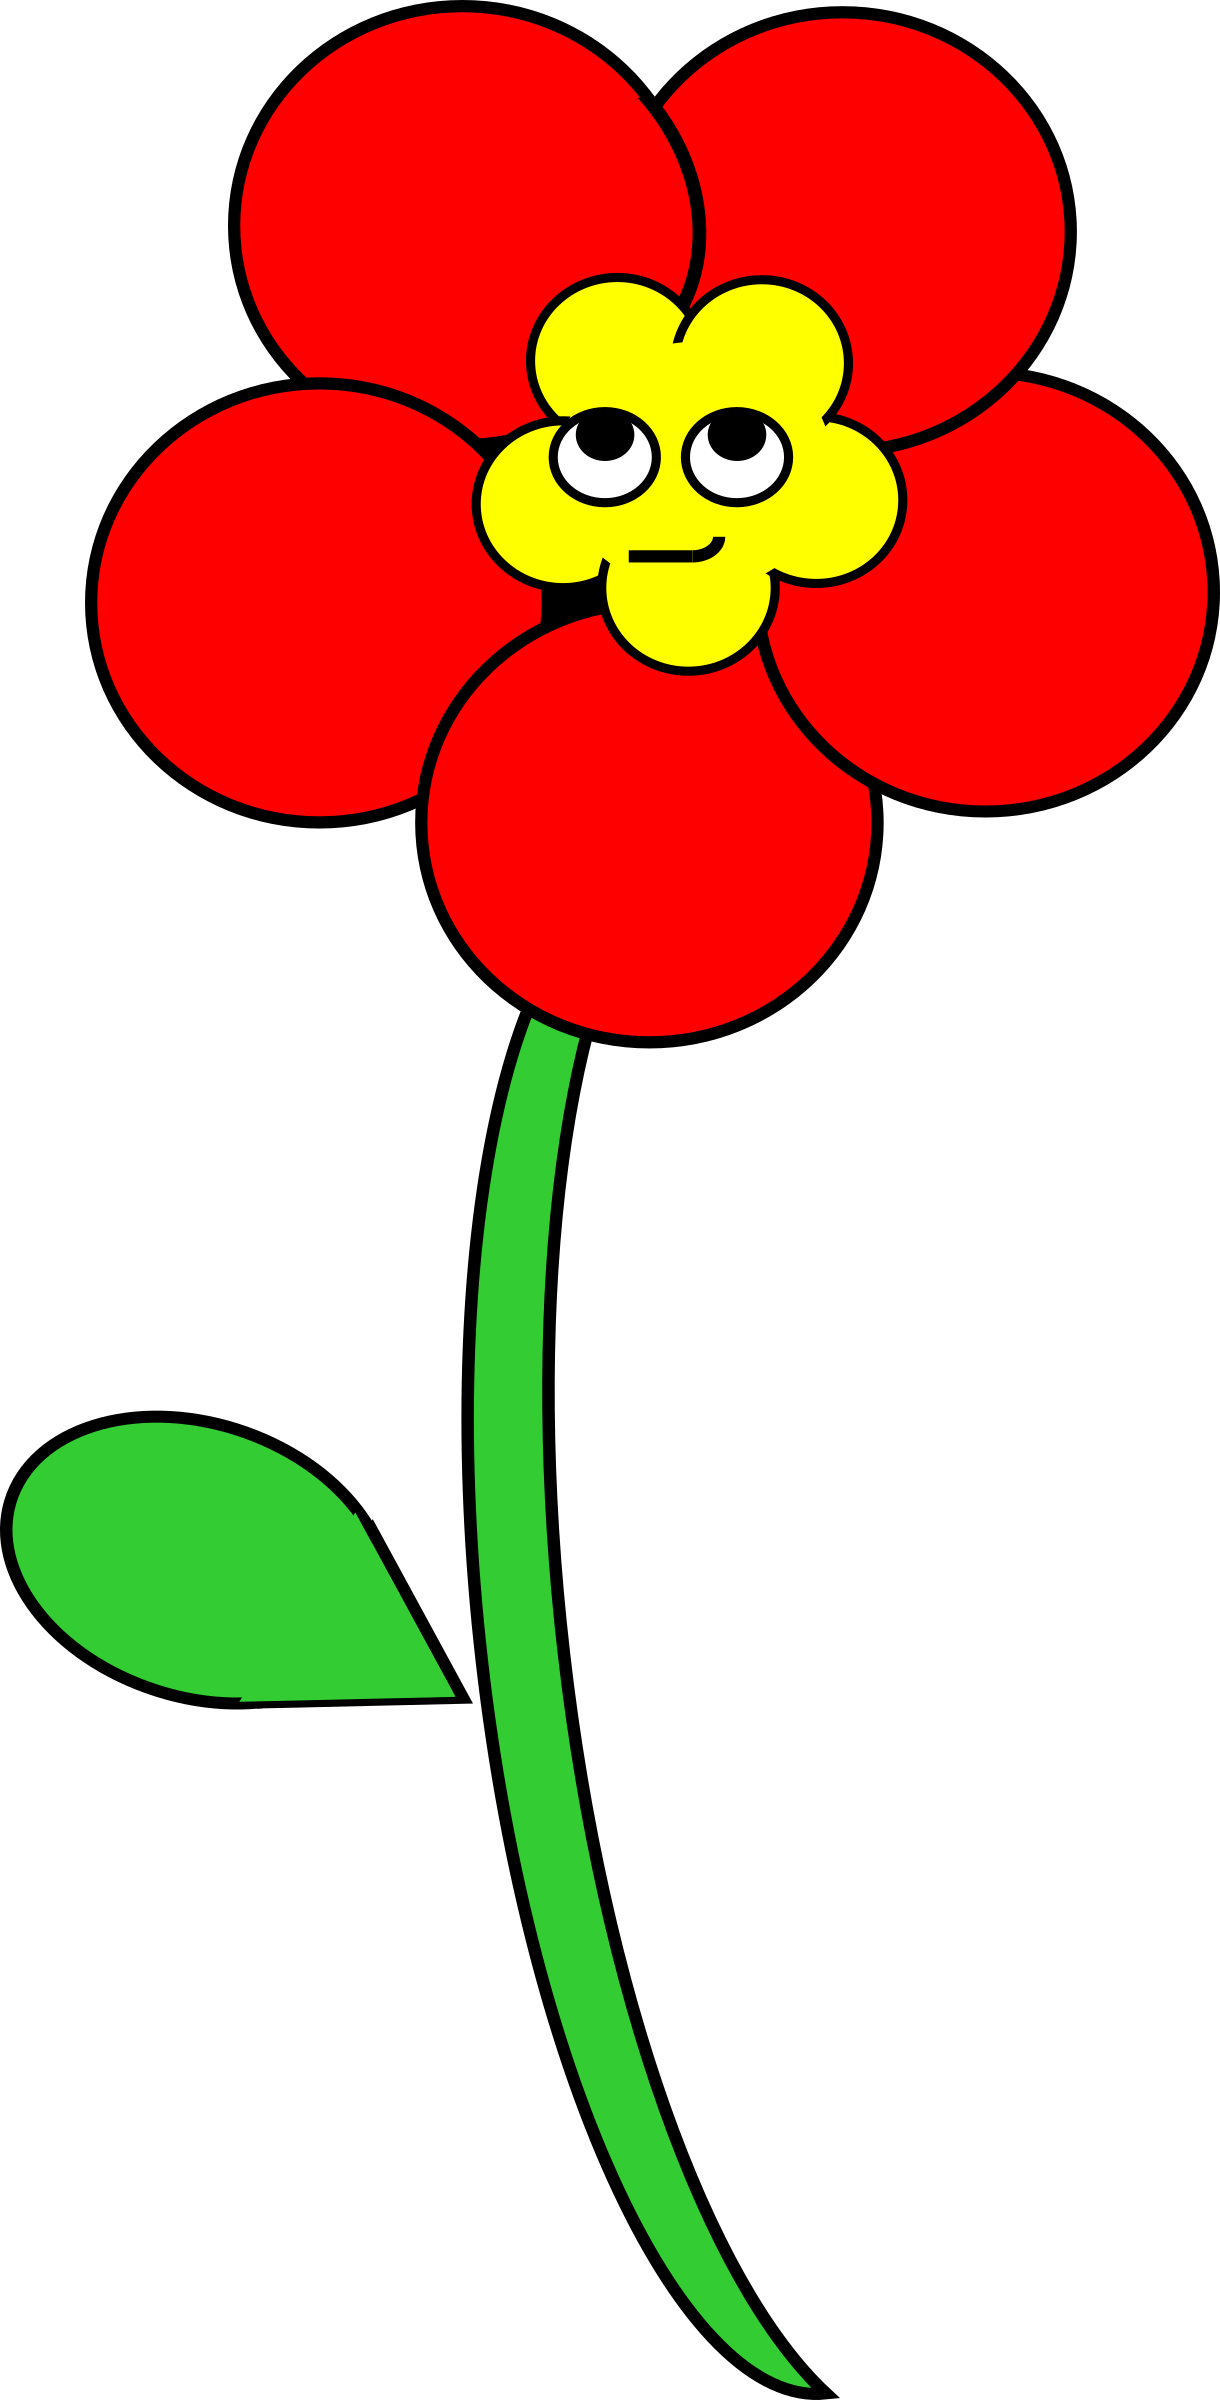 Smiling flower clipart banner library Clipart - Smiling Poppy banner library